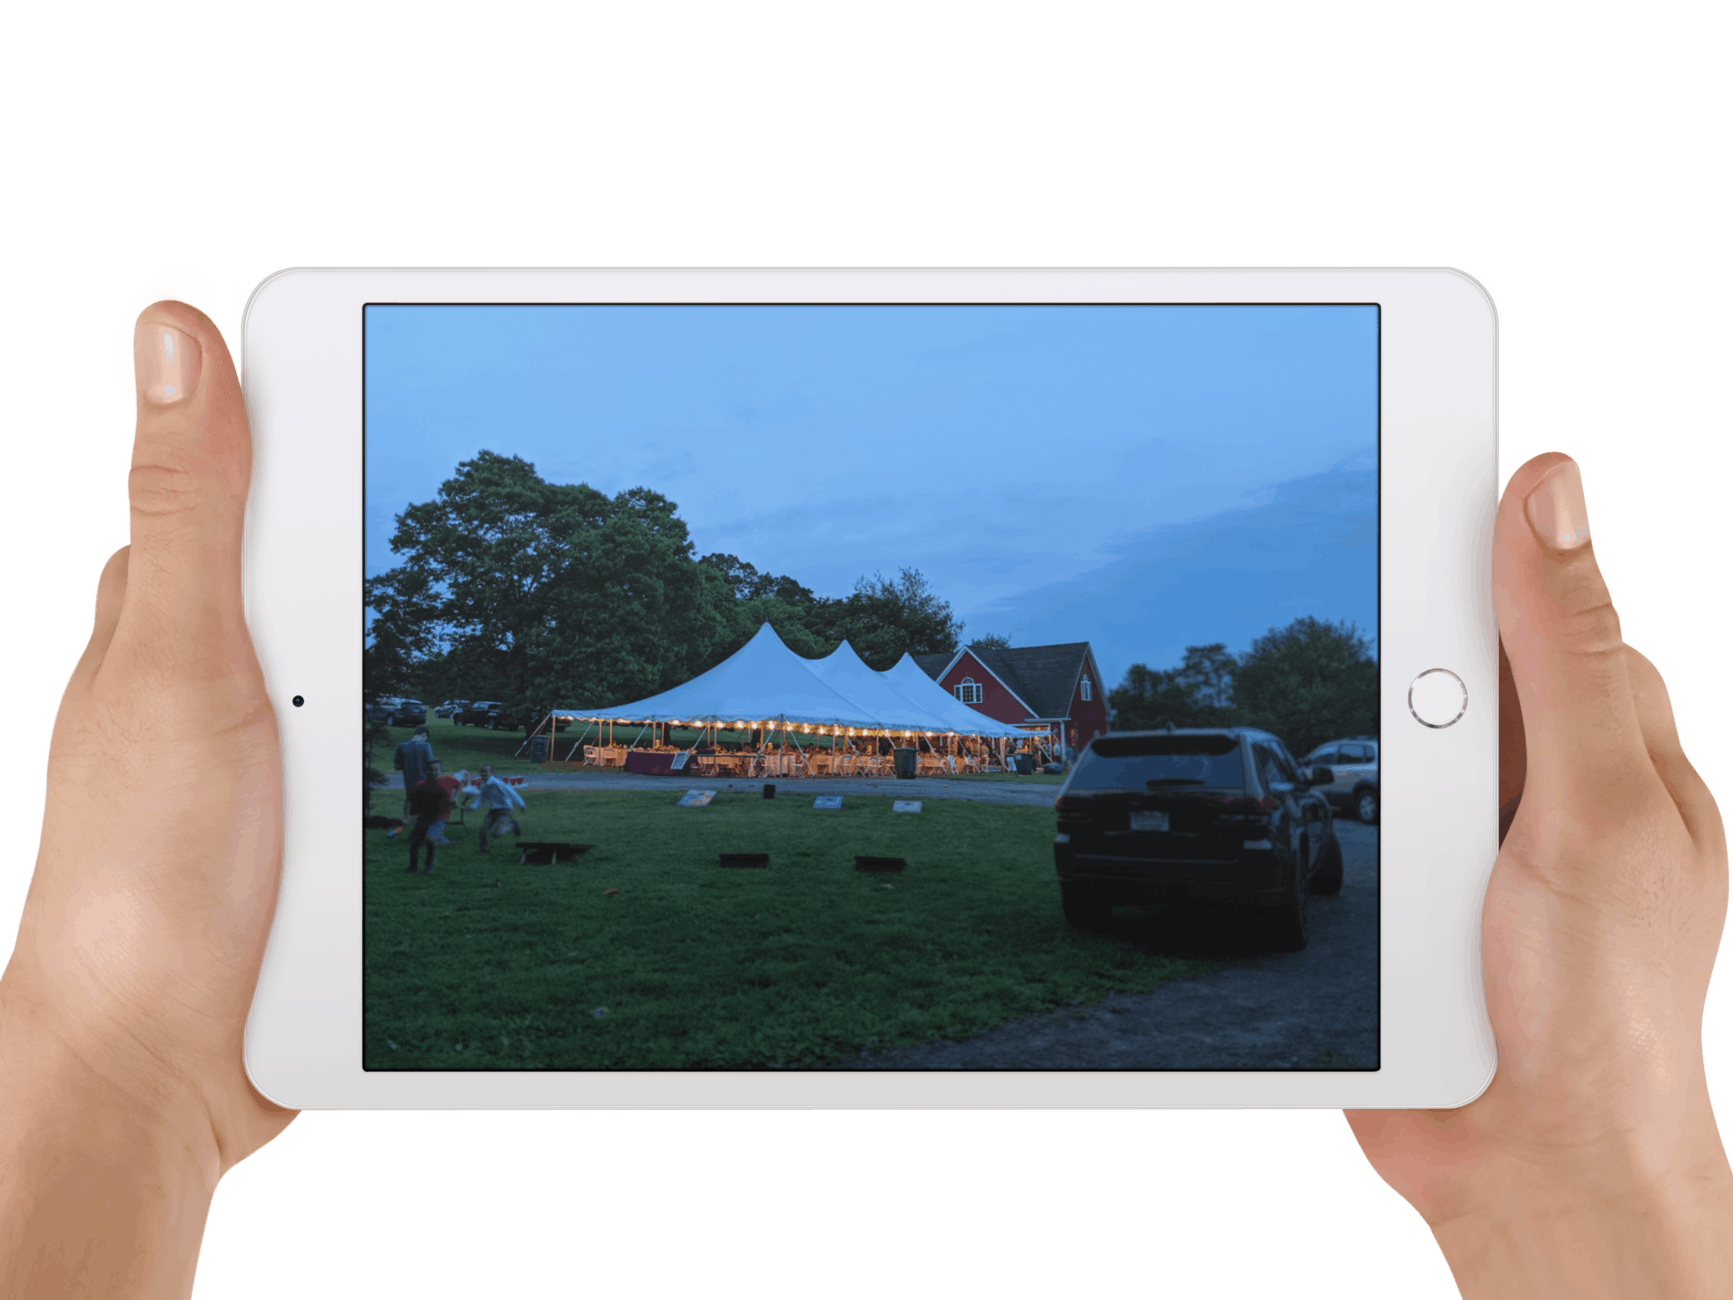 Tablet View of an Outdoor Tent Wedding